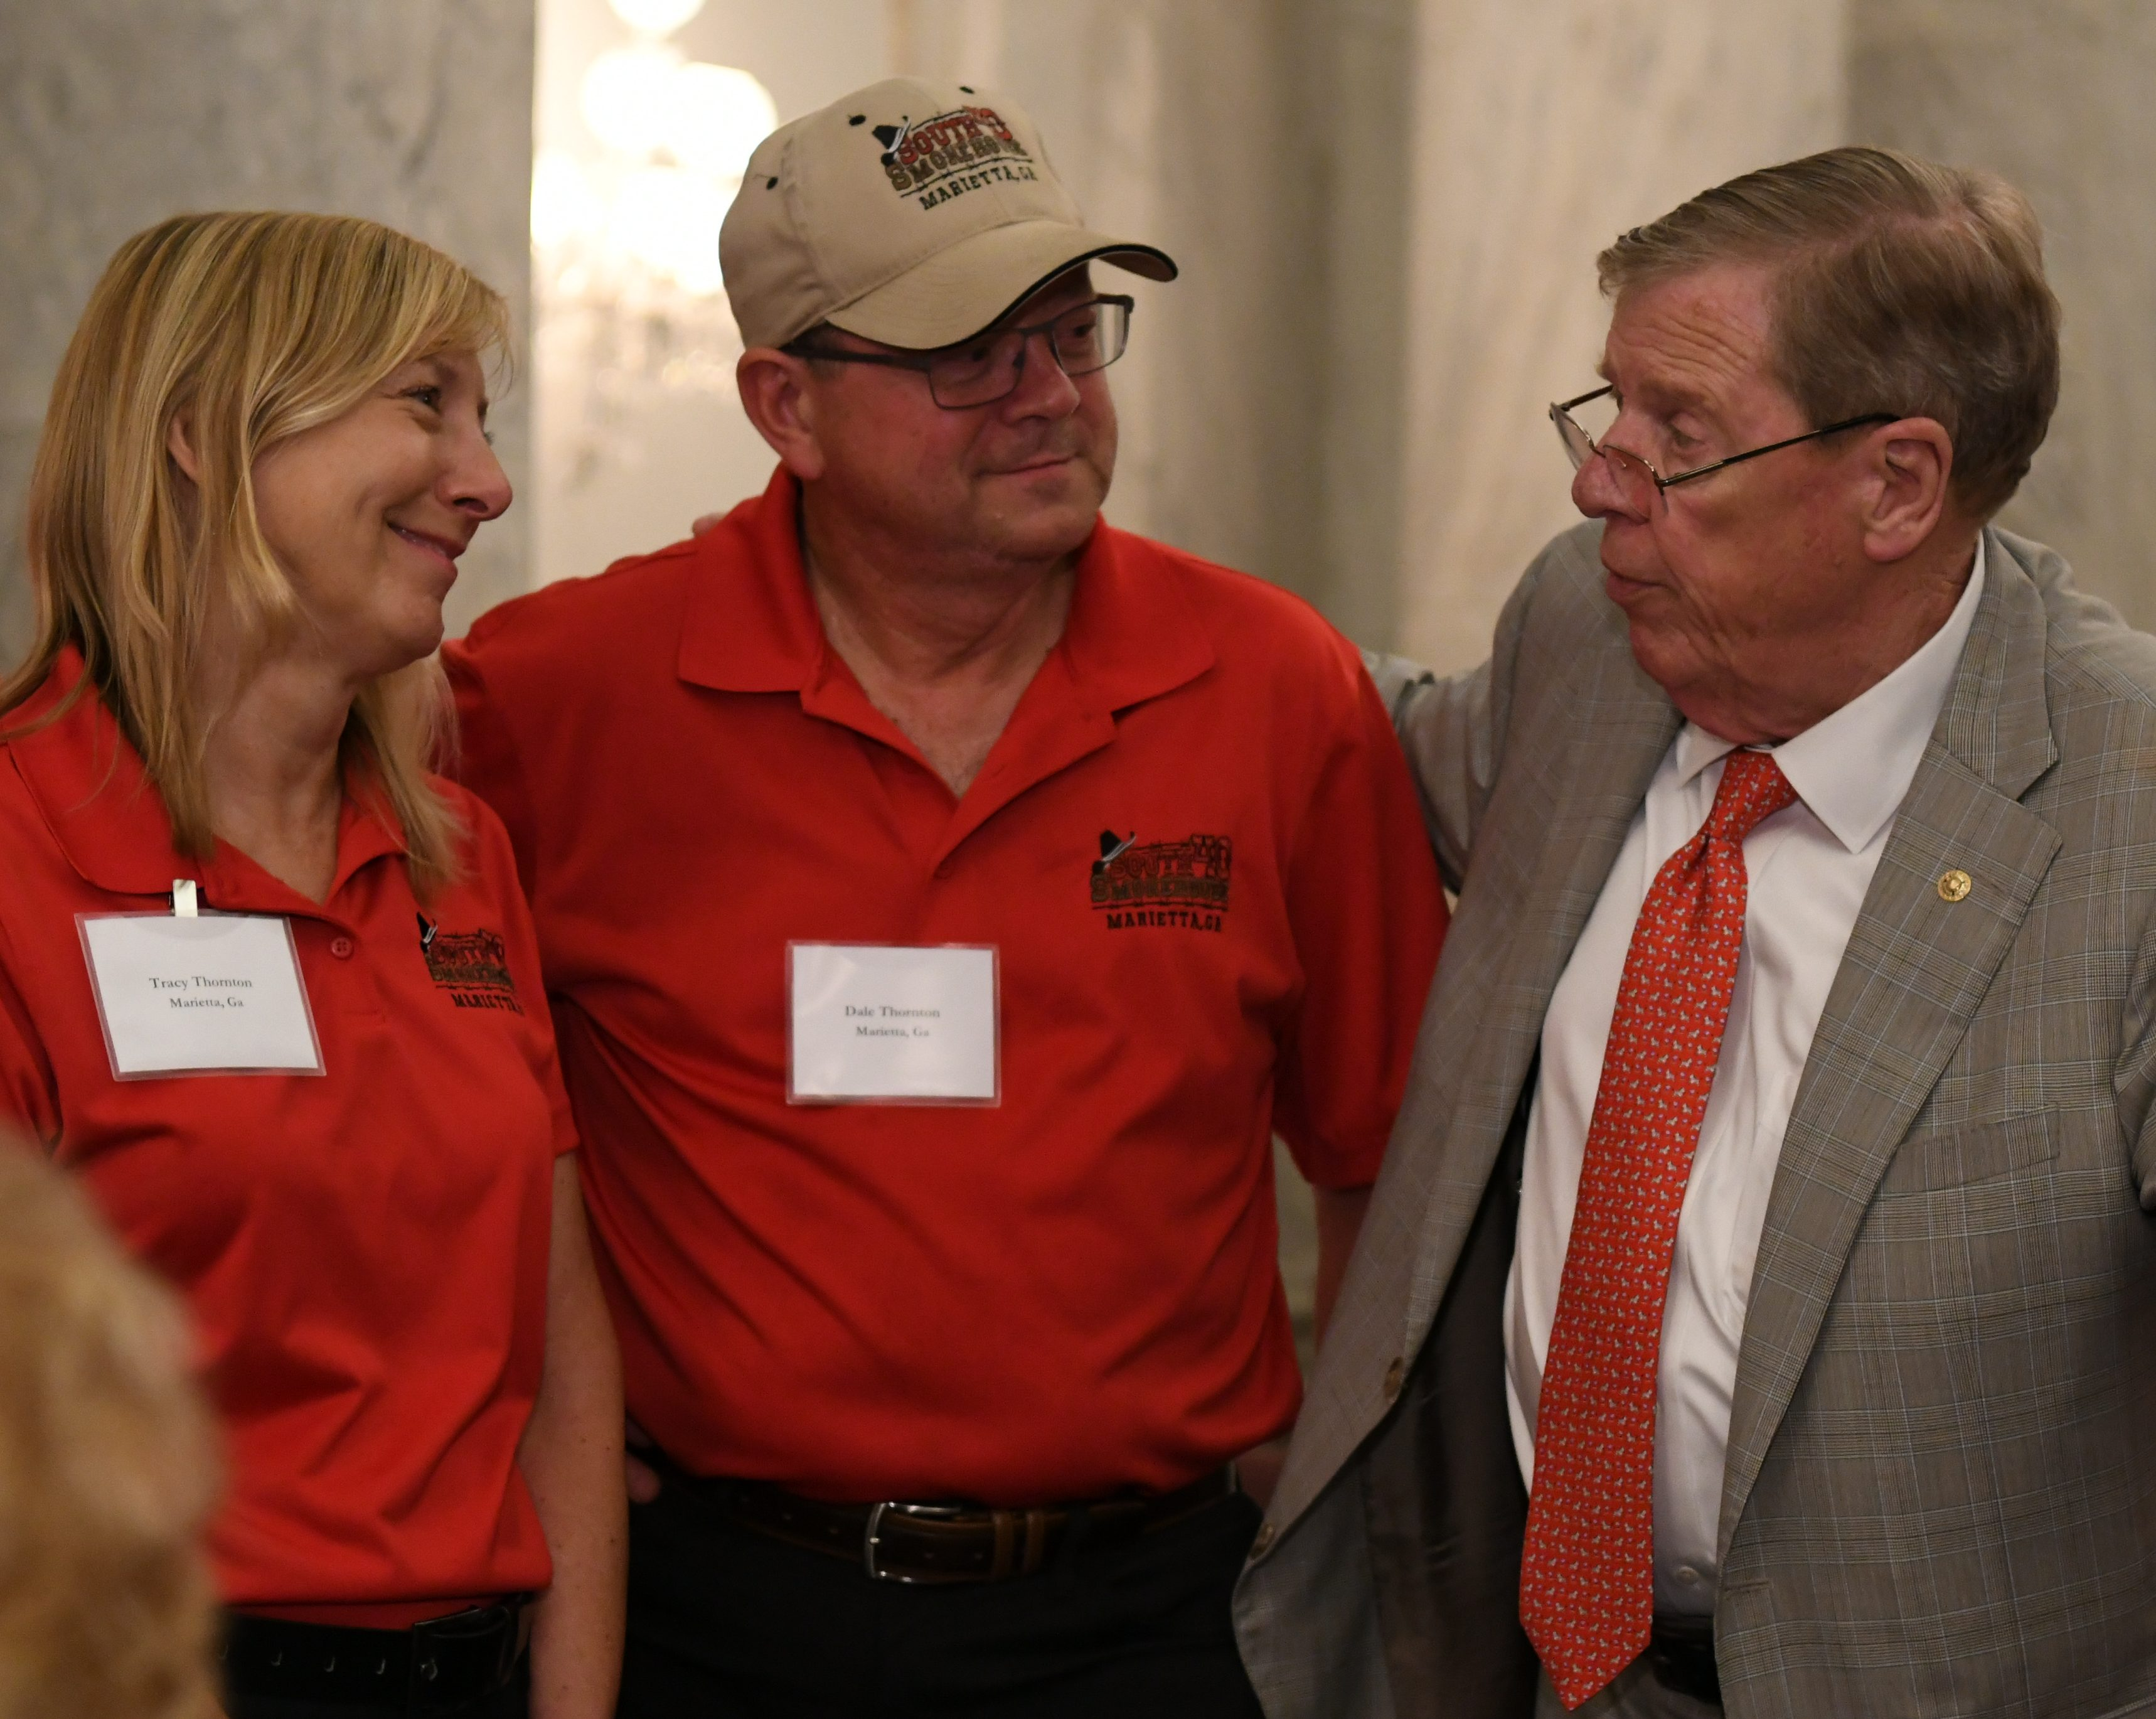 Tracey and Dale Thornton with Georgia Senator Johnny Isakson